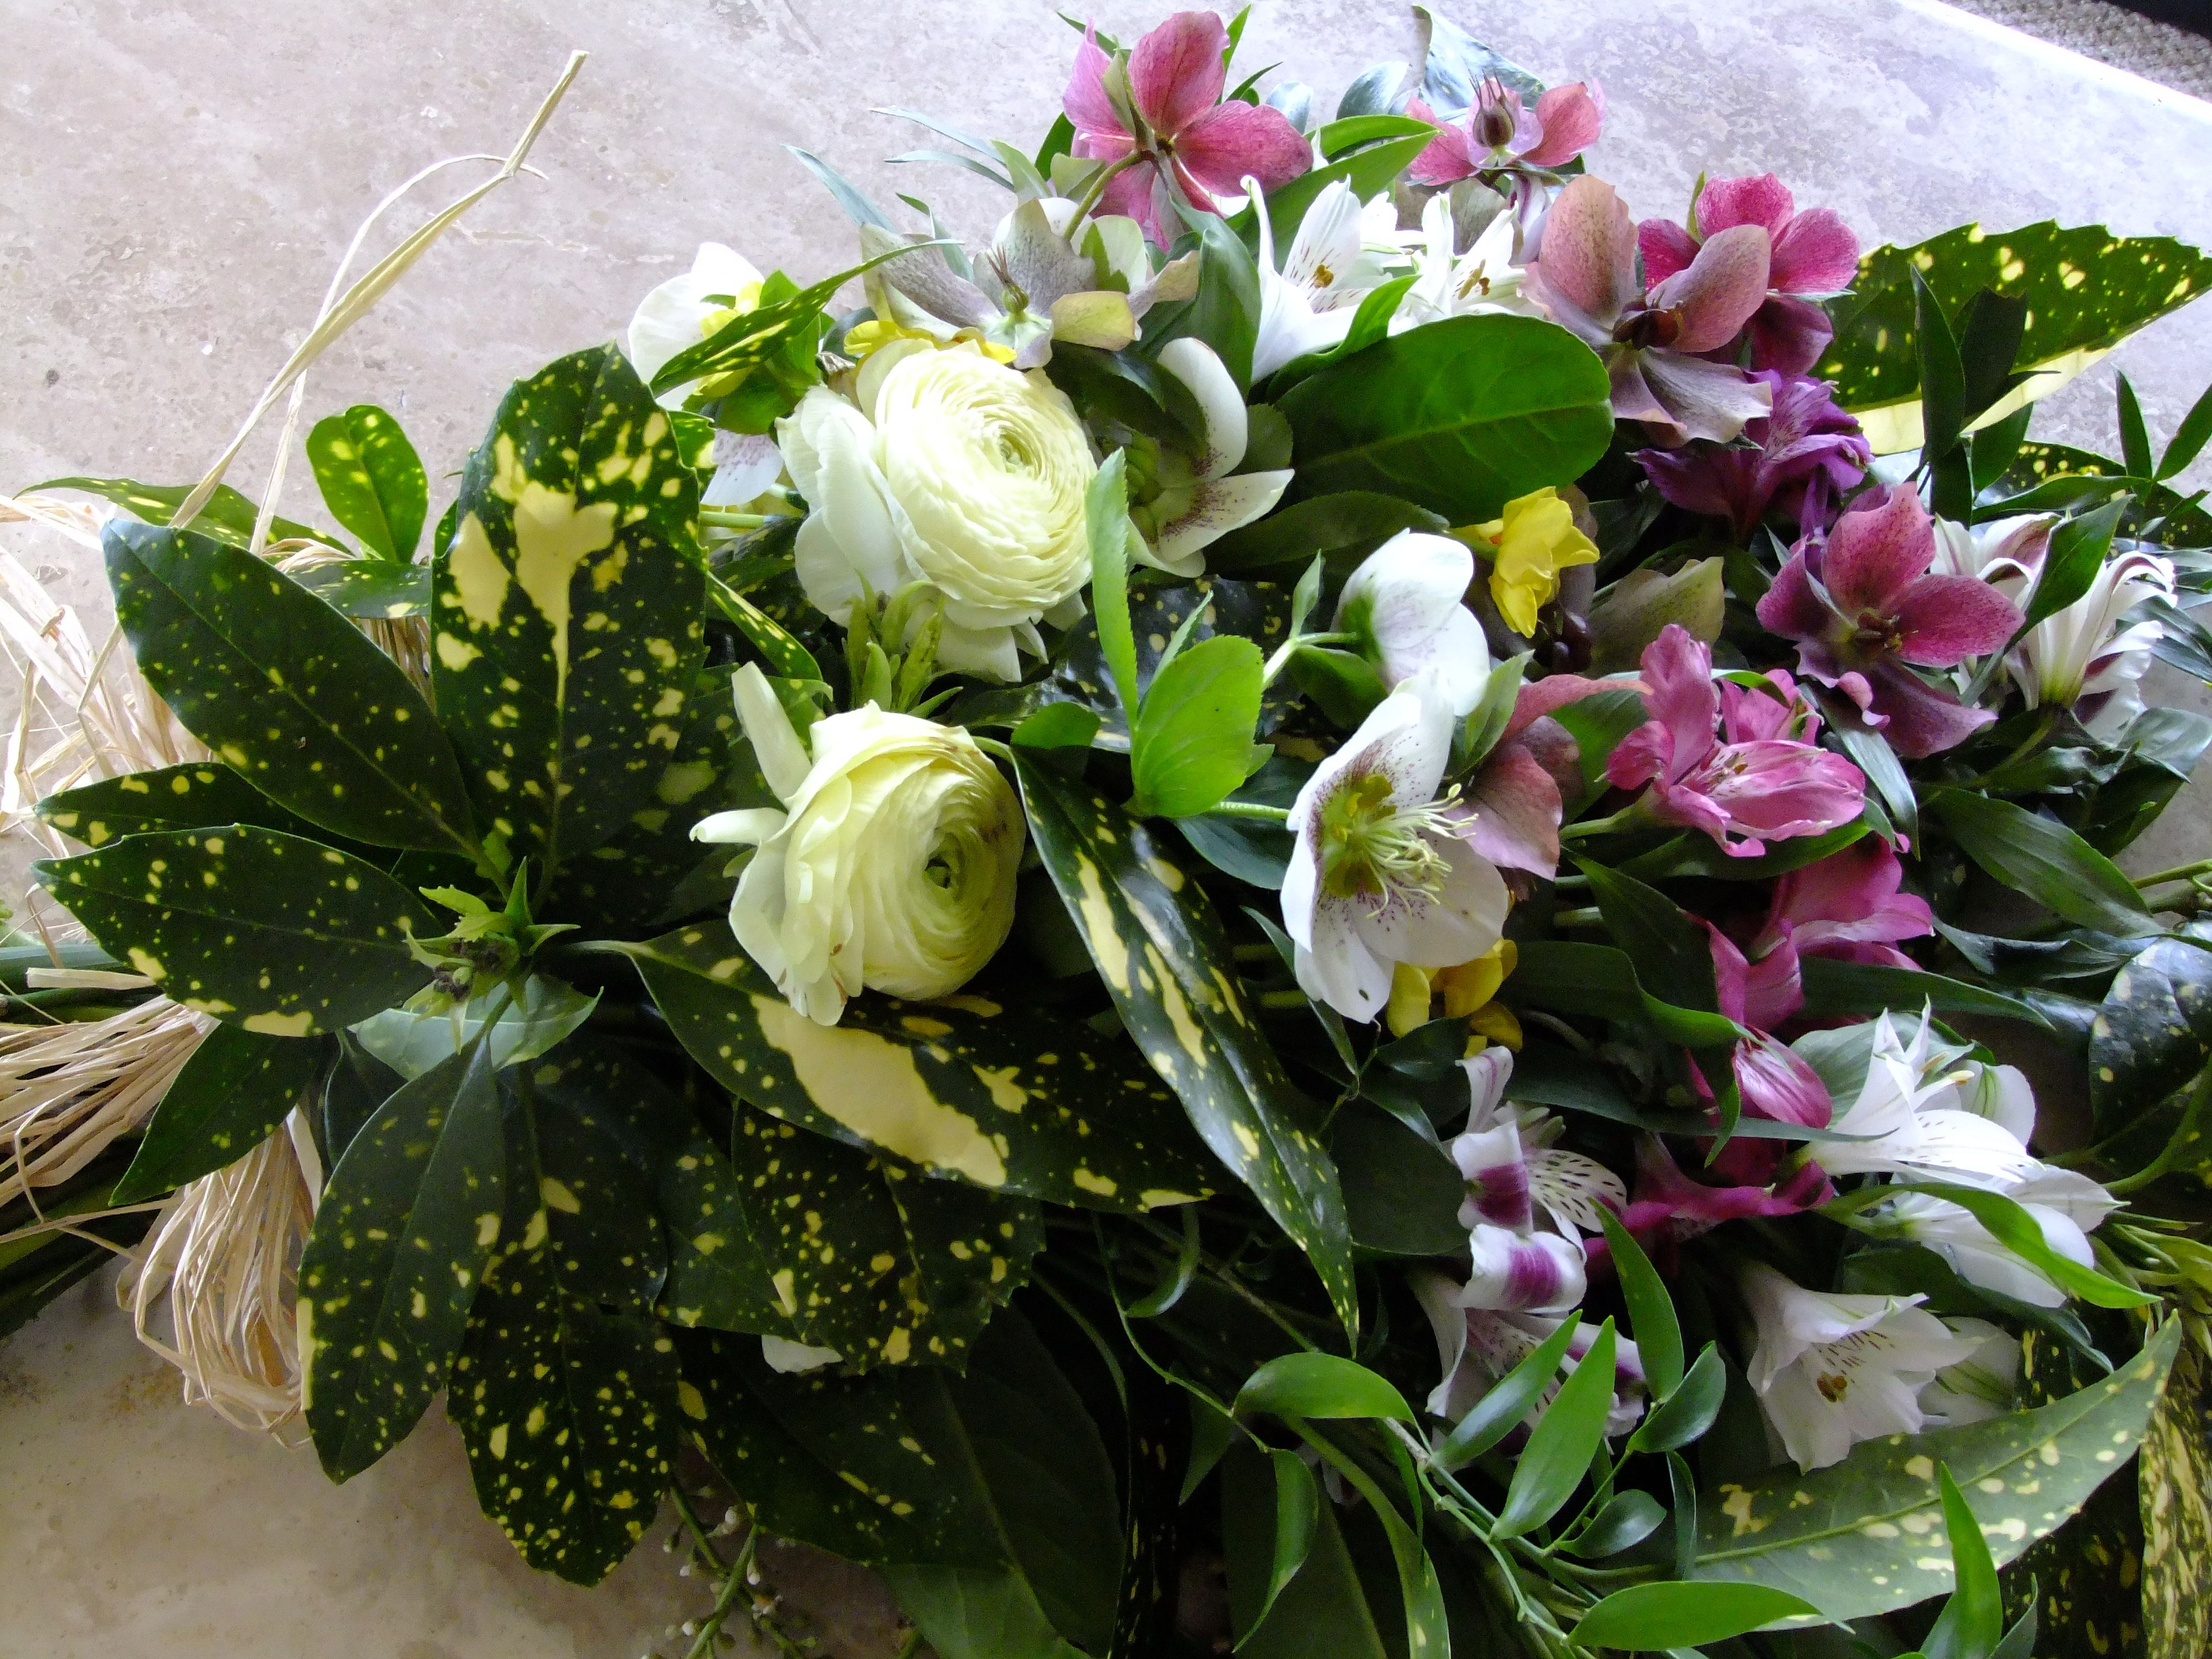 A Funeral Sheaf Of Spring Flowers In Purple And White Including